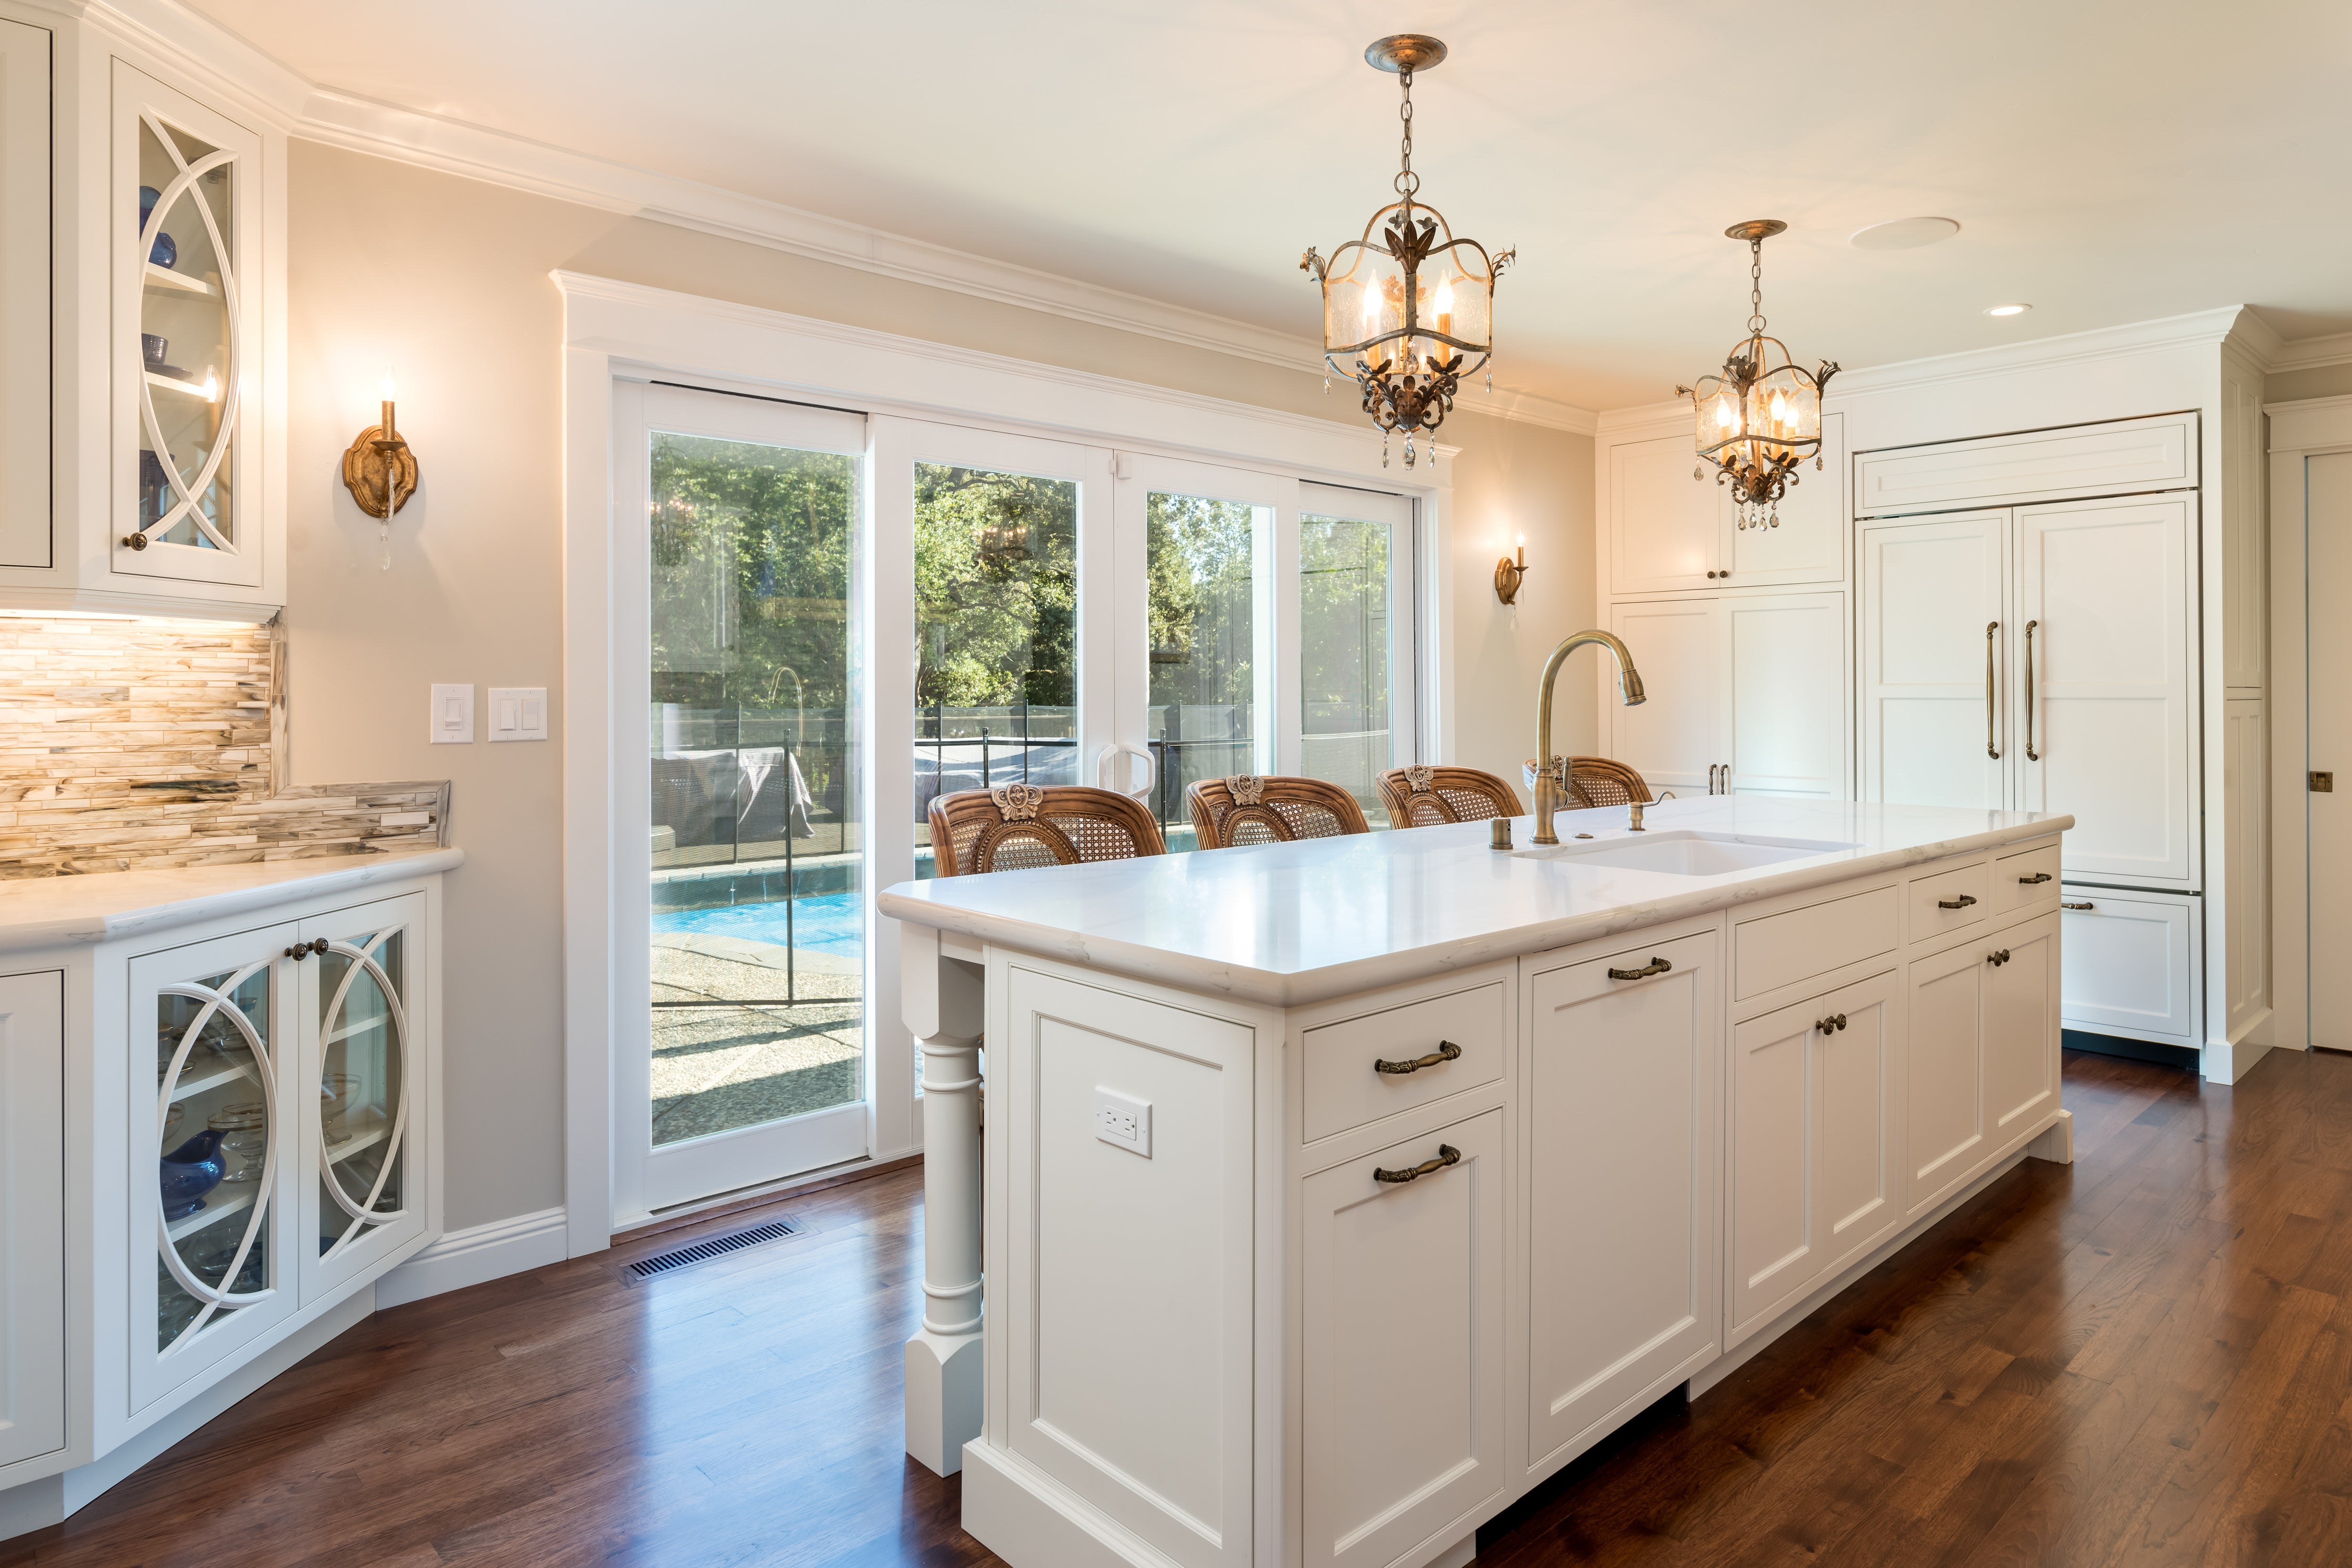 1-Design by Venue, Jackie Lopey, Moraga Kitchen Remodel - White Cabinets - French Influence